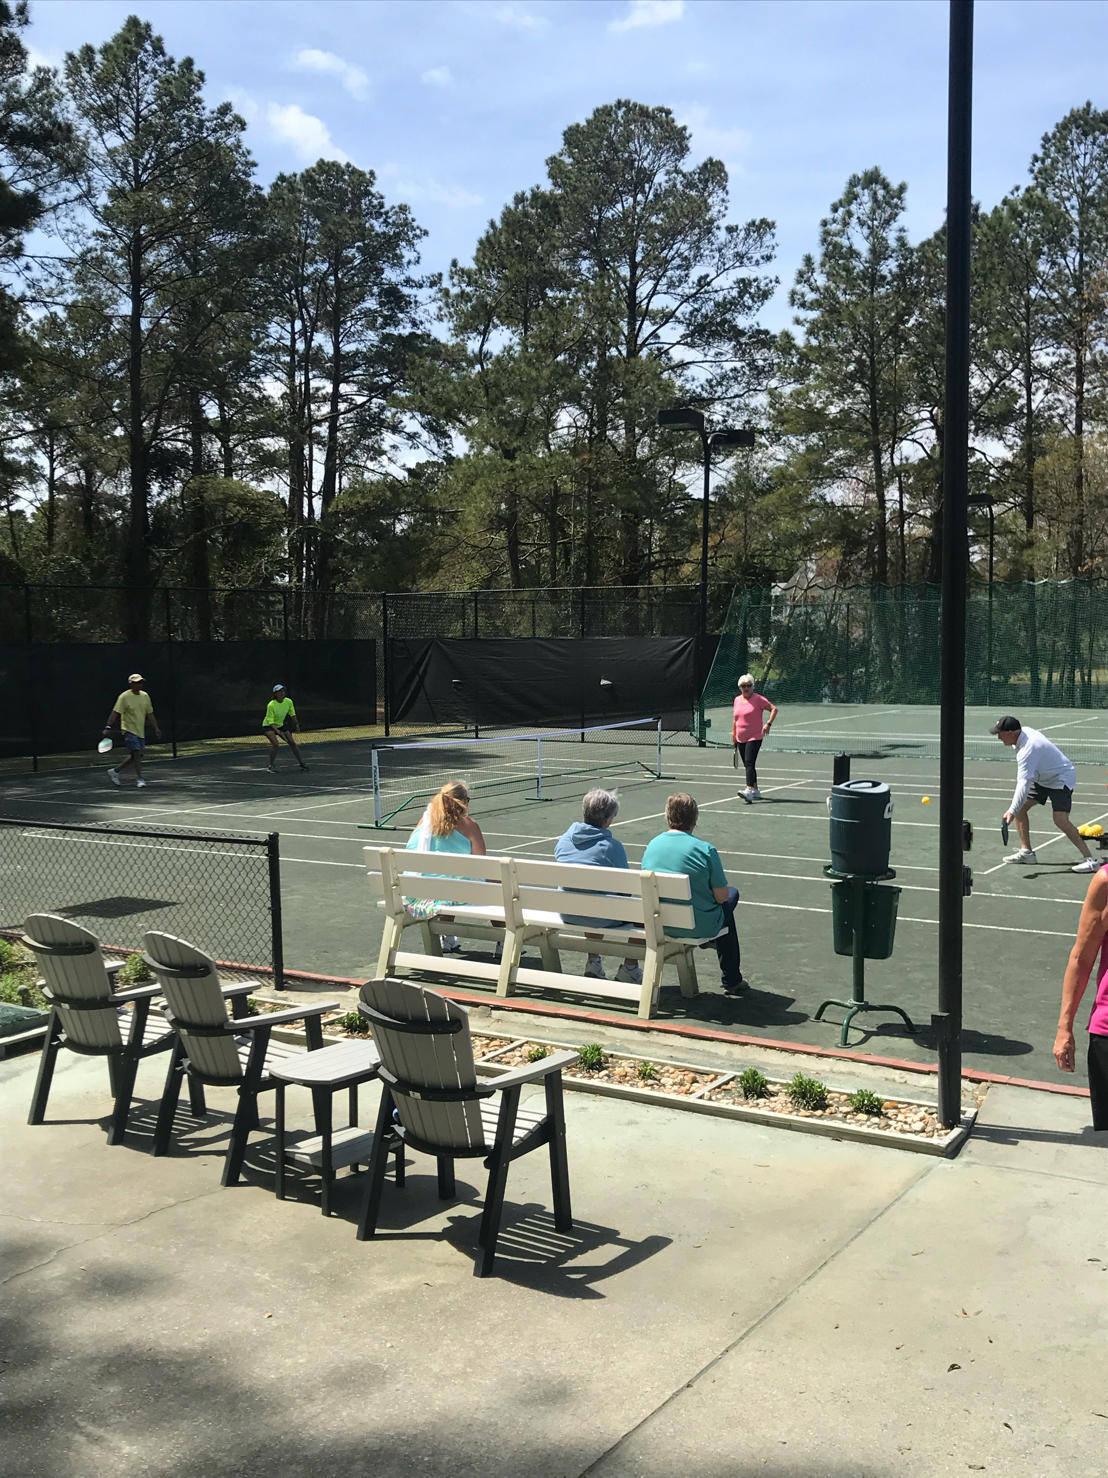 Clubs are now offering Pickleball on Clay Tennis Courts